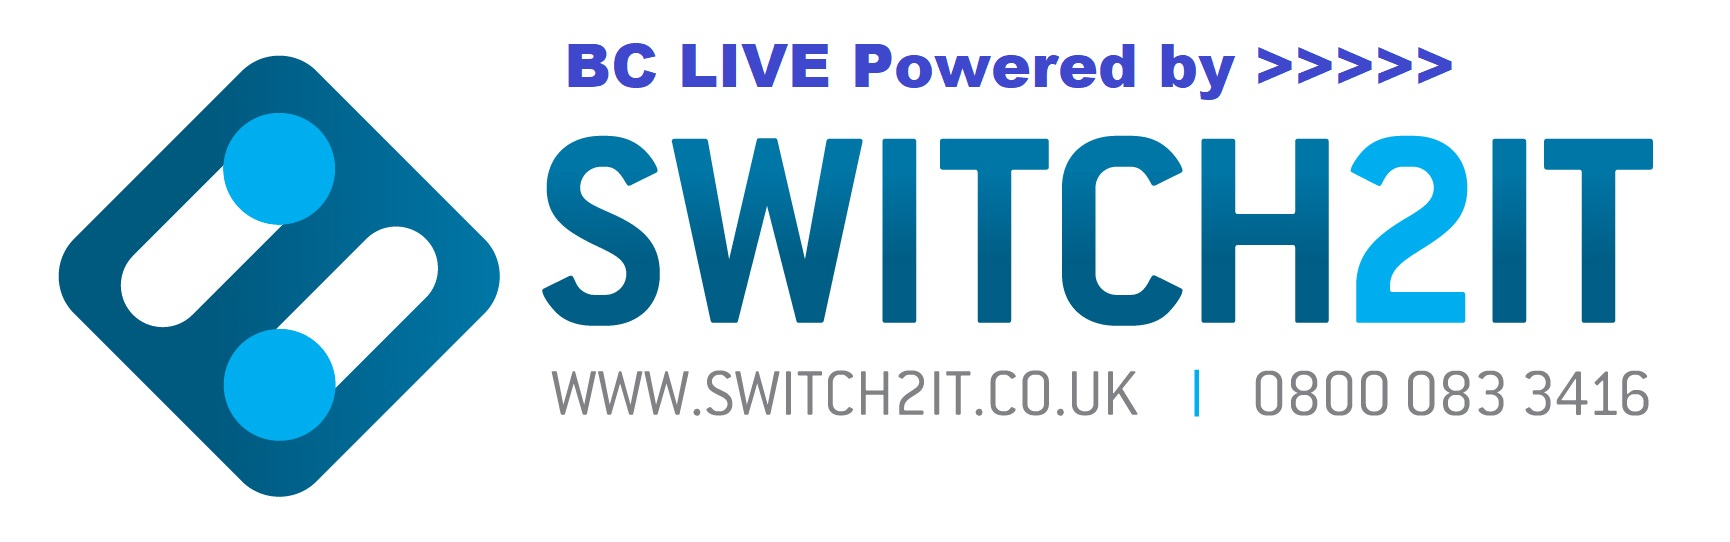 Powered by Switch2IT